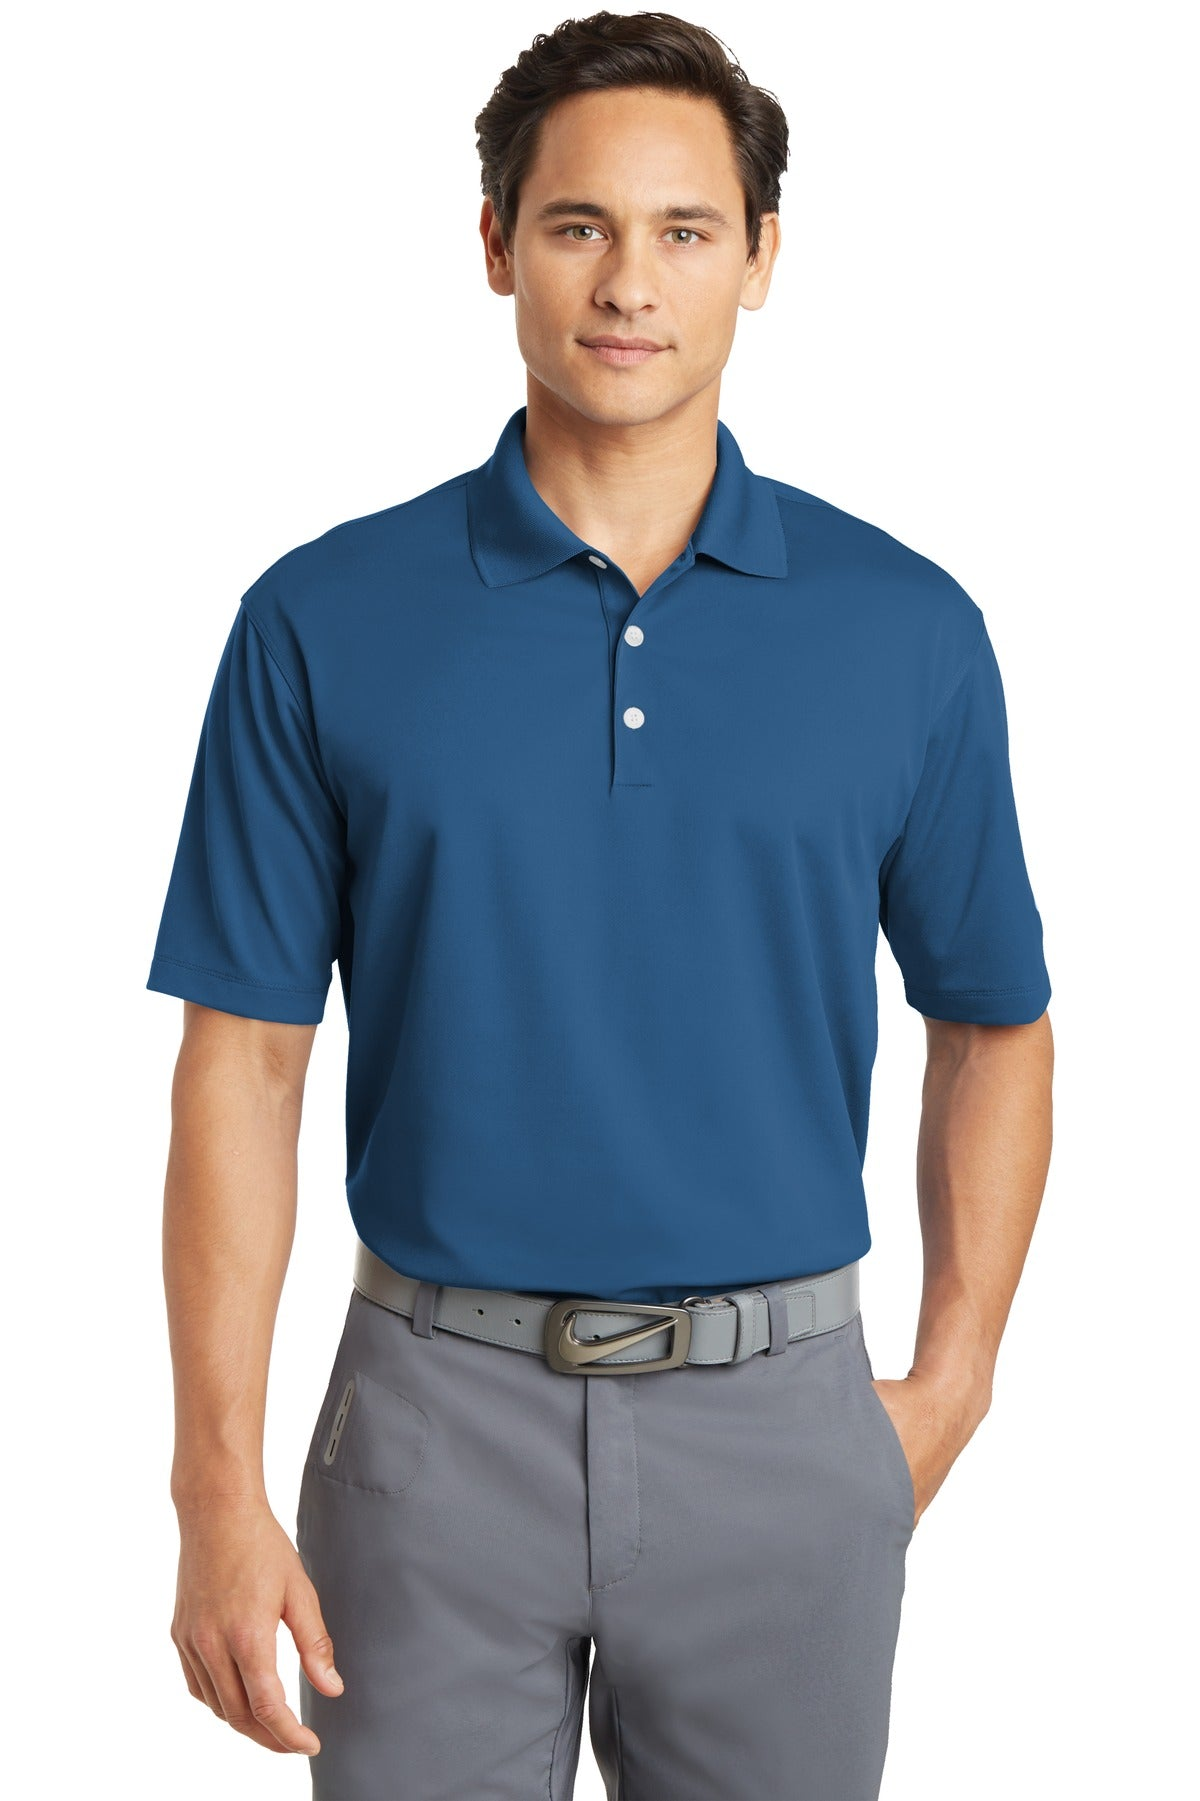 Court Blue Nike Tall Dri-FIT Micro Pique Polo.